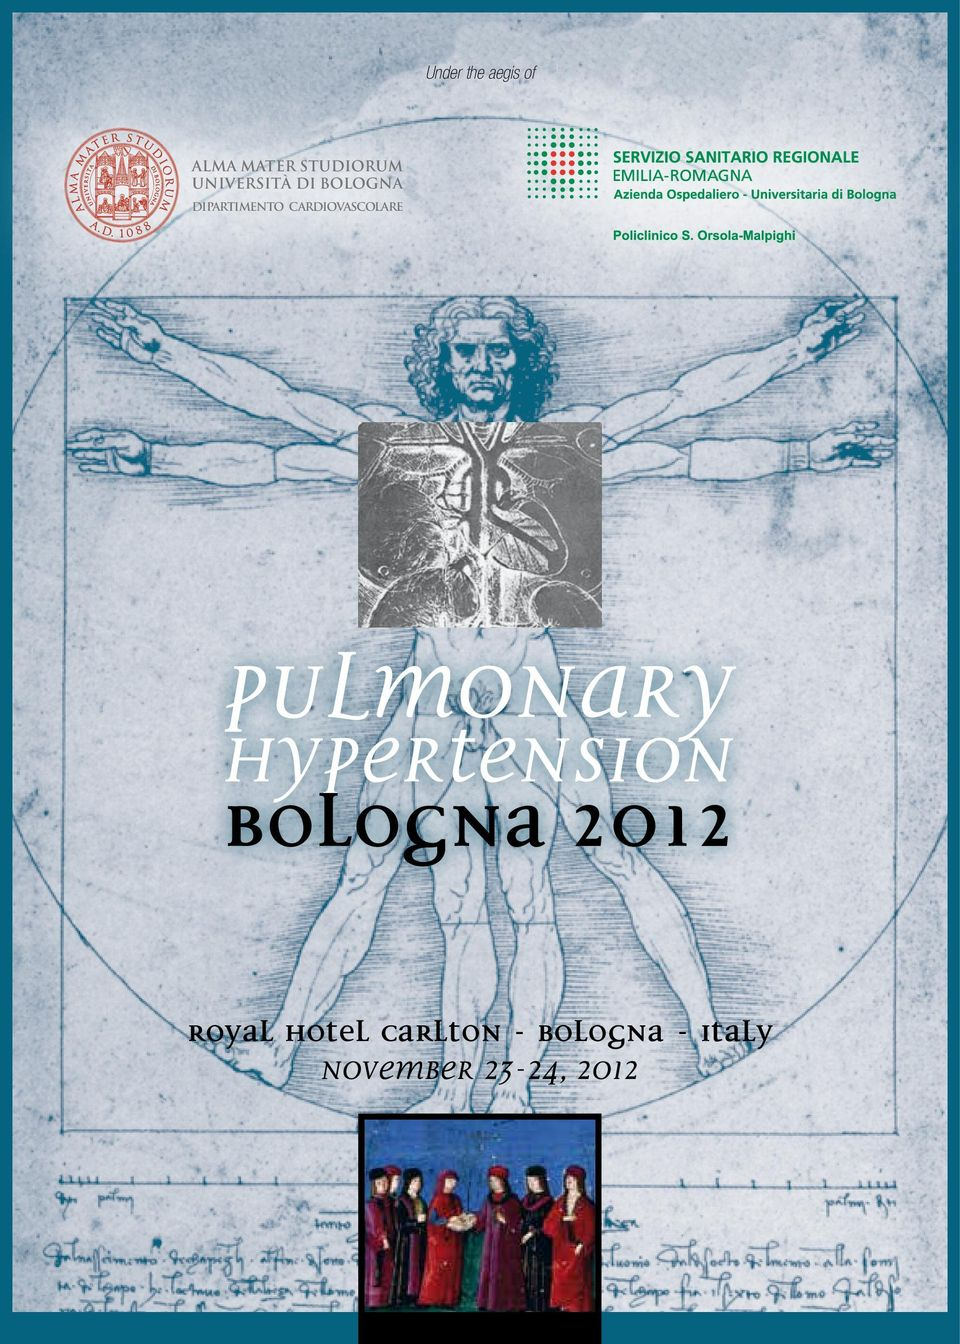 cardiovascolare pulmonary hypertension bologna